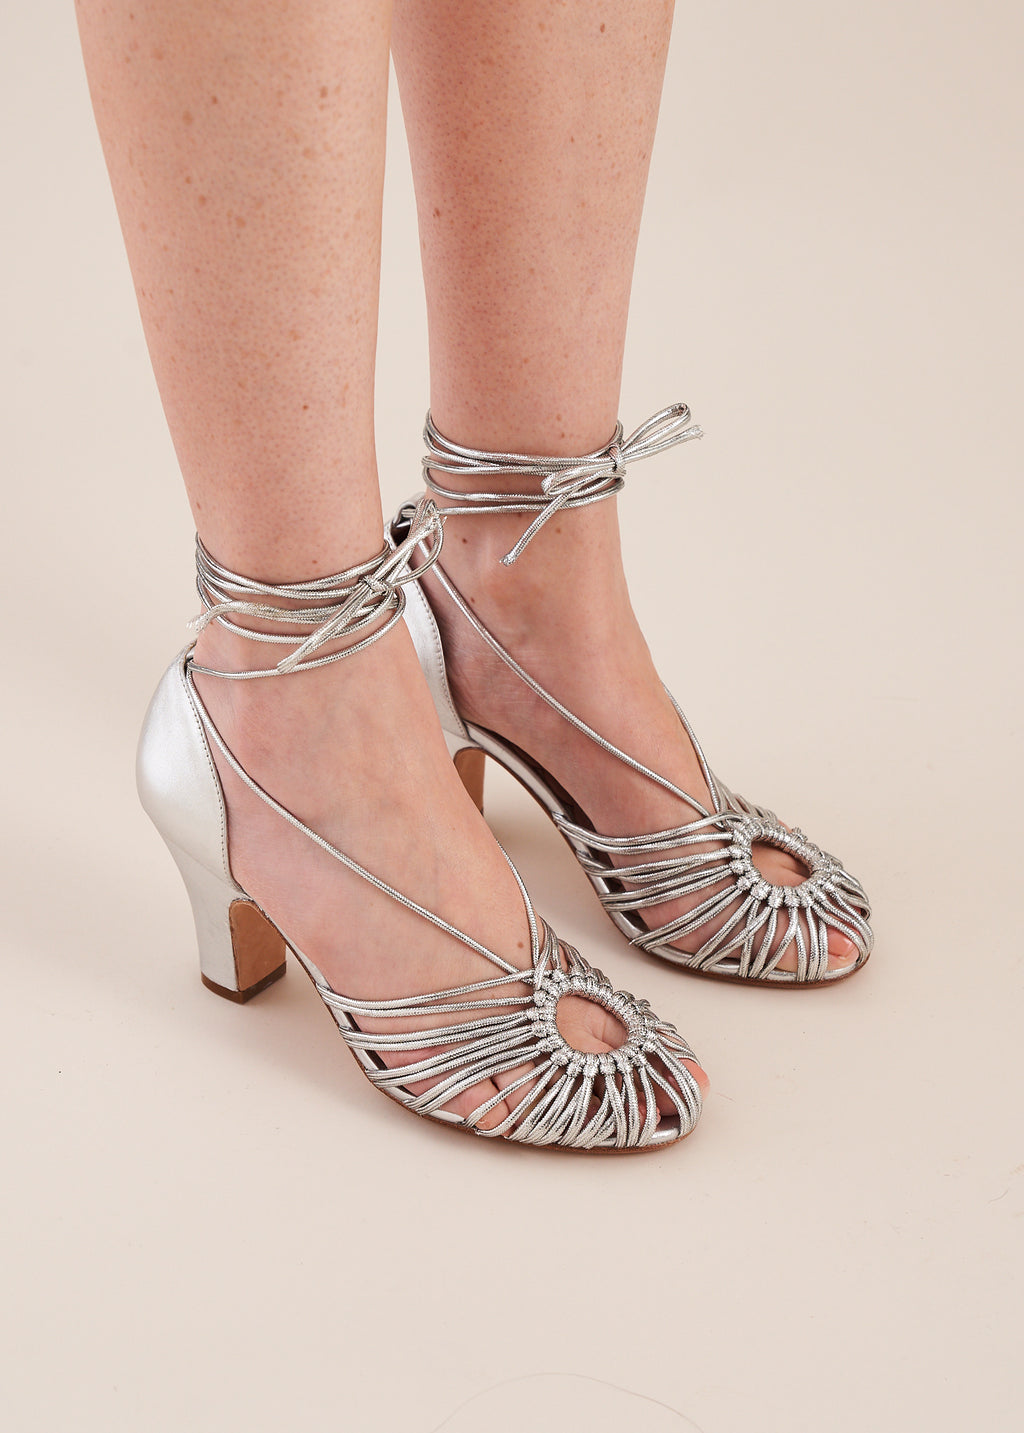 Paloma hand woven spaghetti strap rope tie heeled sandals in silver by Miss L Fire. Limited edition, vintage inspired. Luxury shoes.